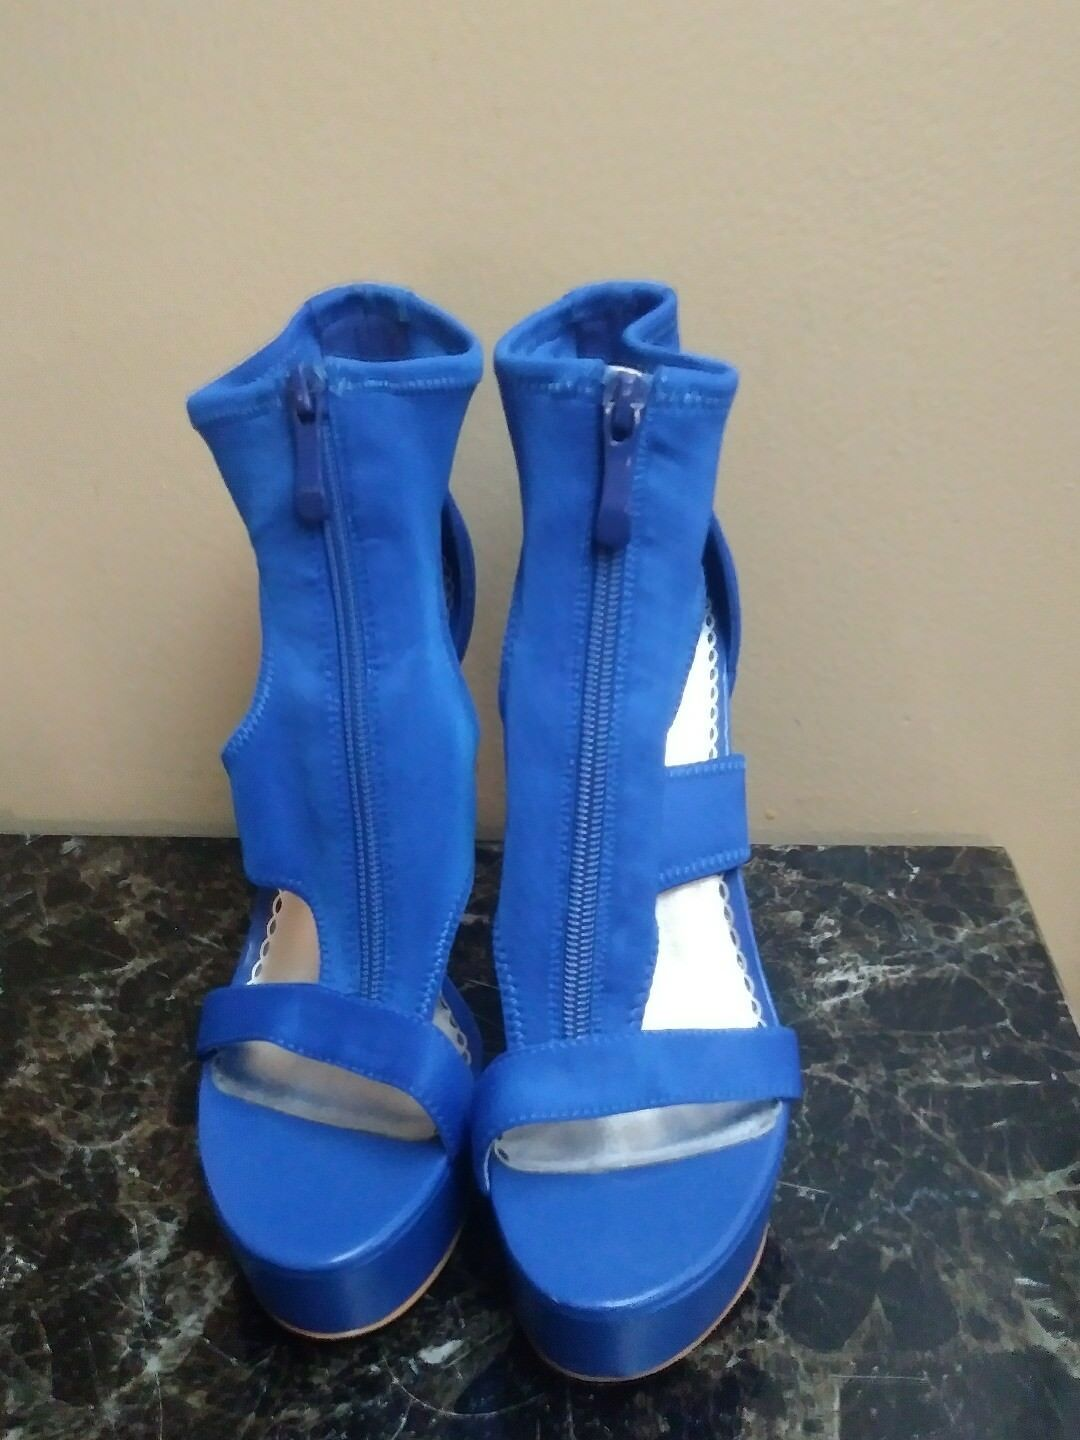 Bebe shigh heel stiletto in a beautiful blue royal blue beautiful 7M 824bee